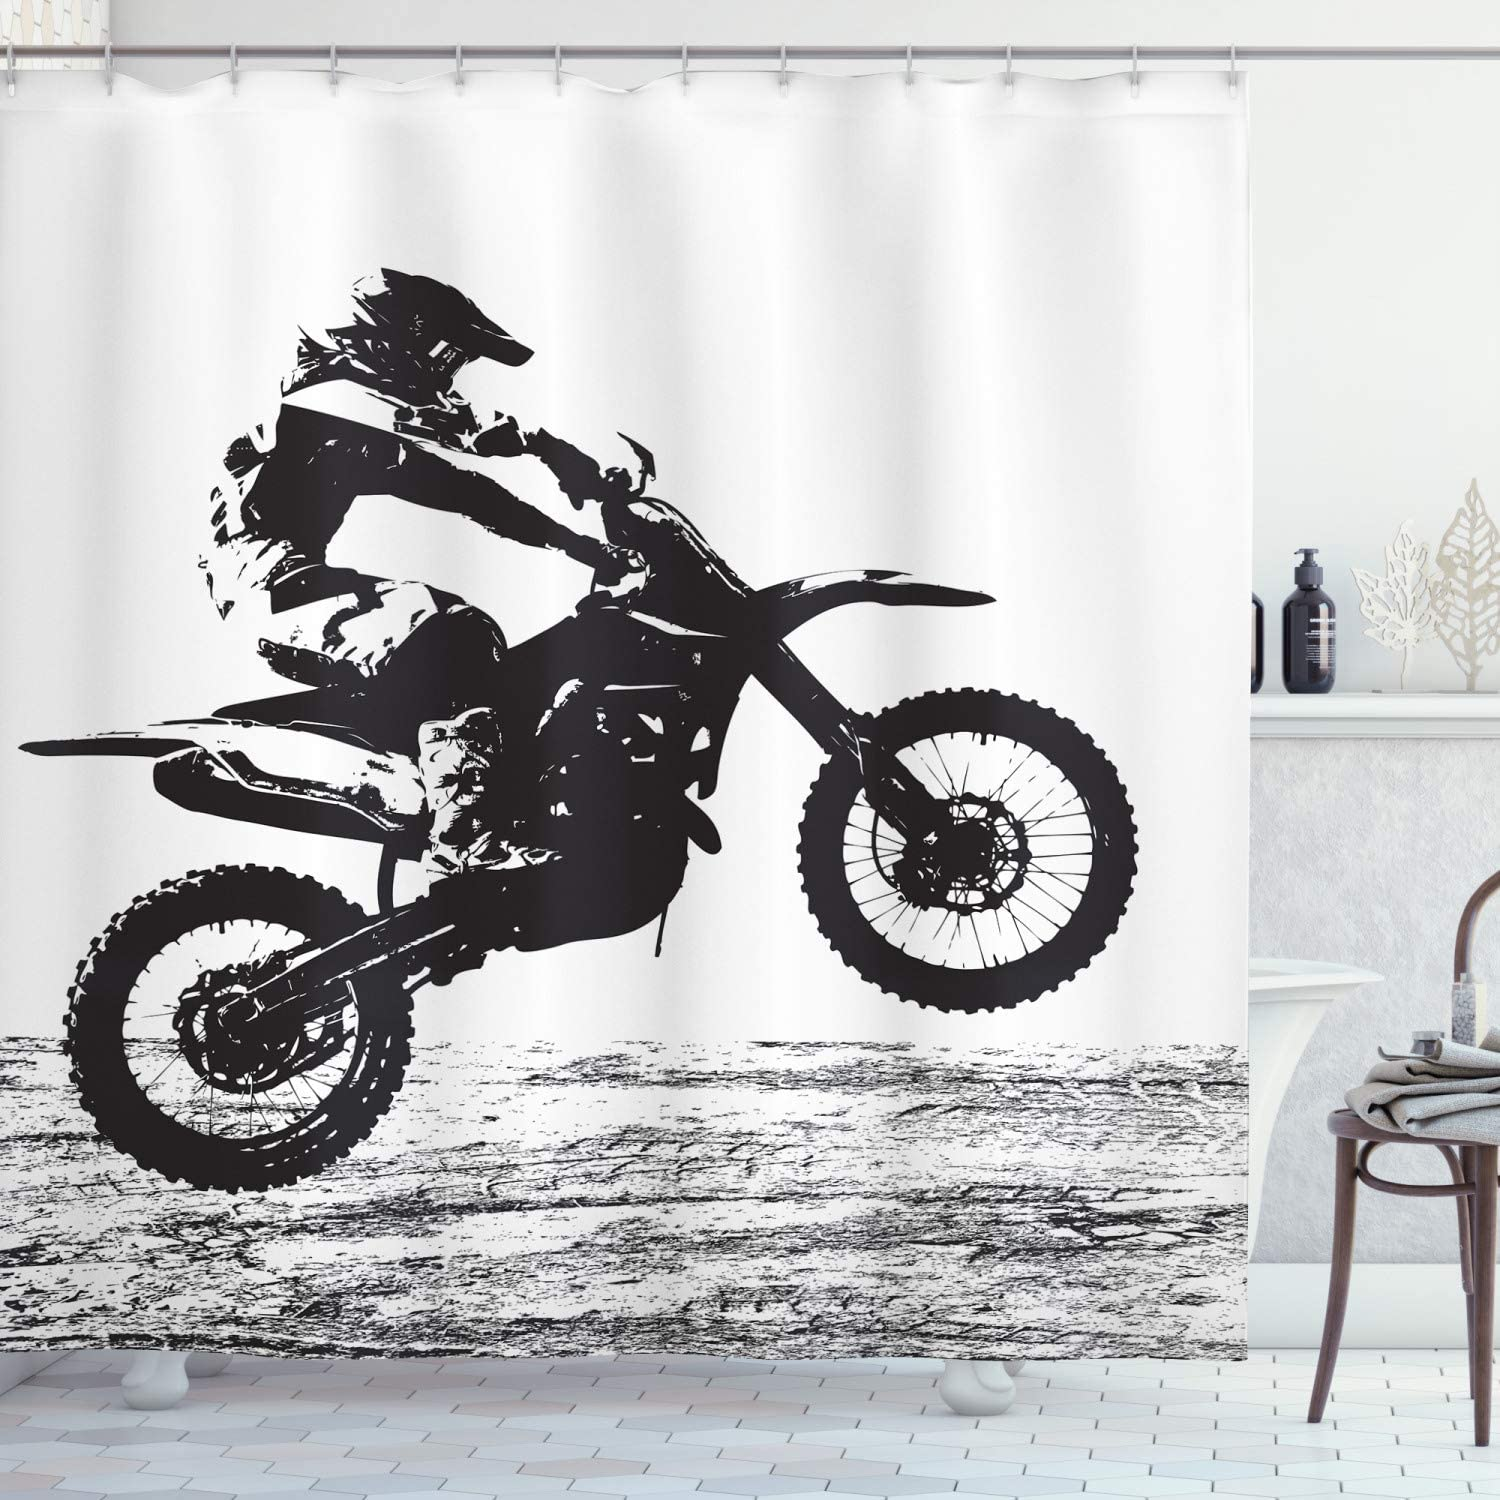 Lunarable Dirt Bike Shower Curtain Participating Motocros SEAL limited product Free Shipping Cheap Bargain Gift Rider